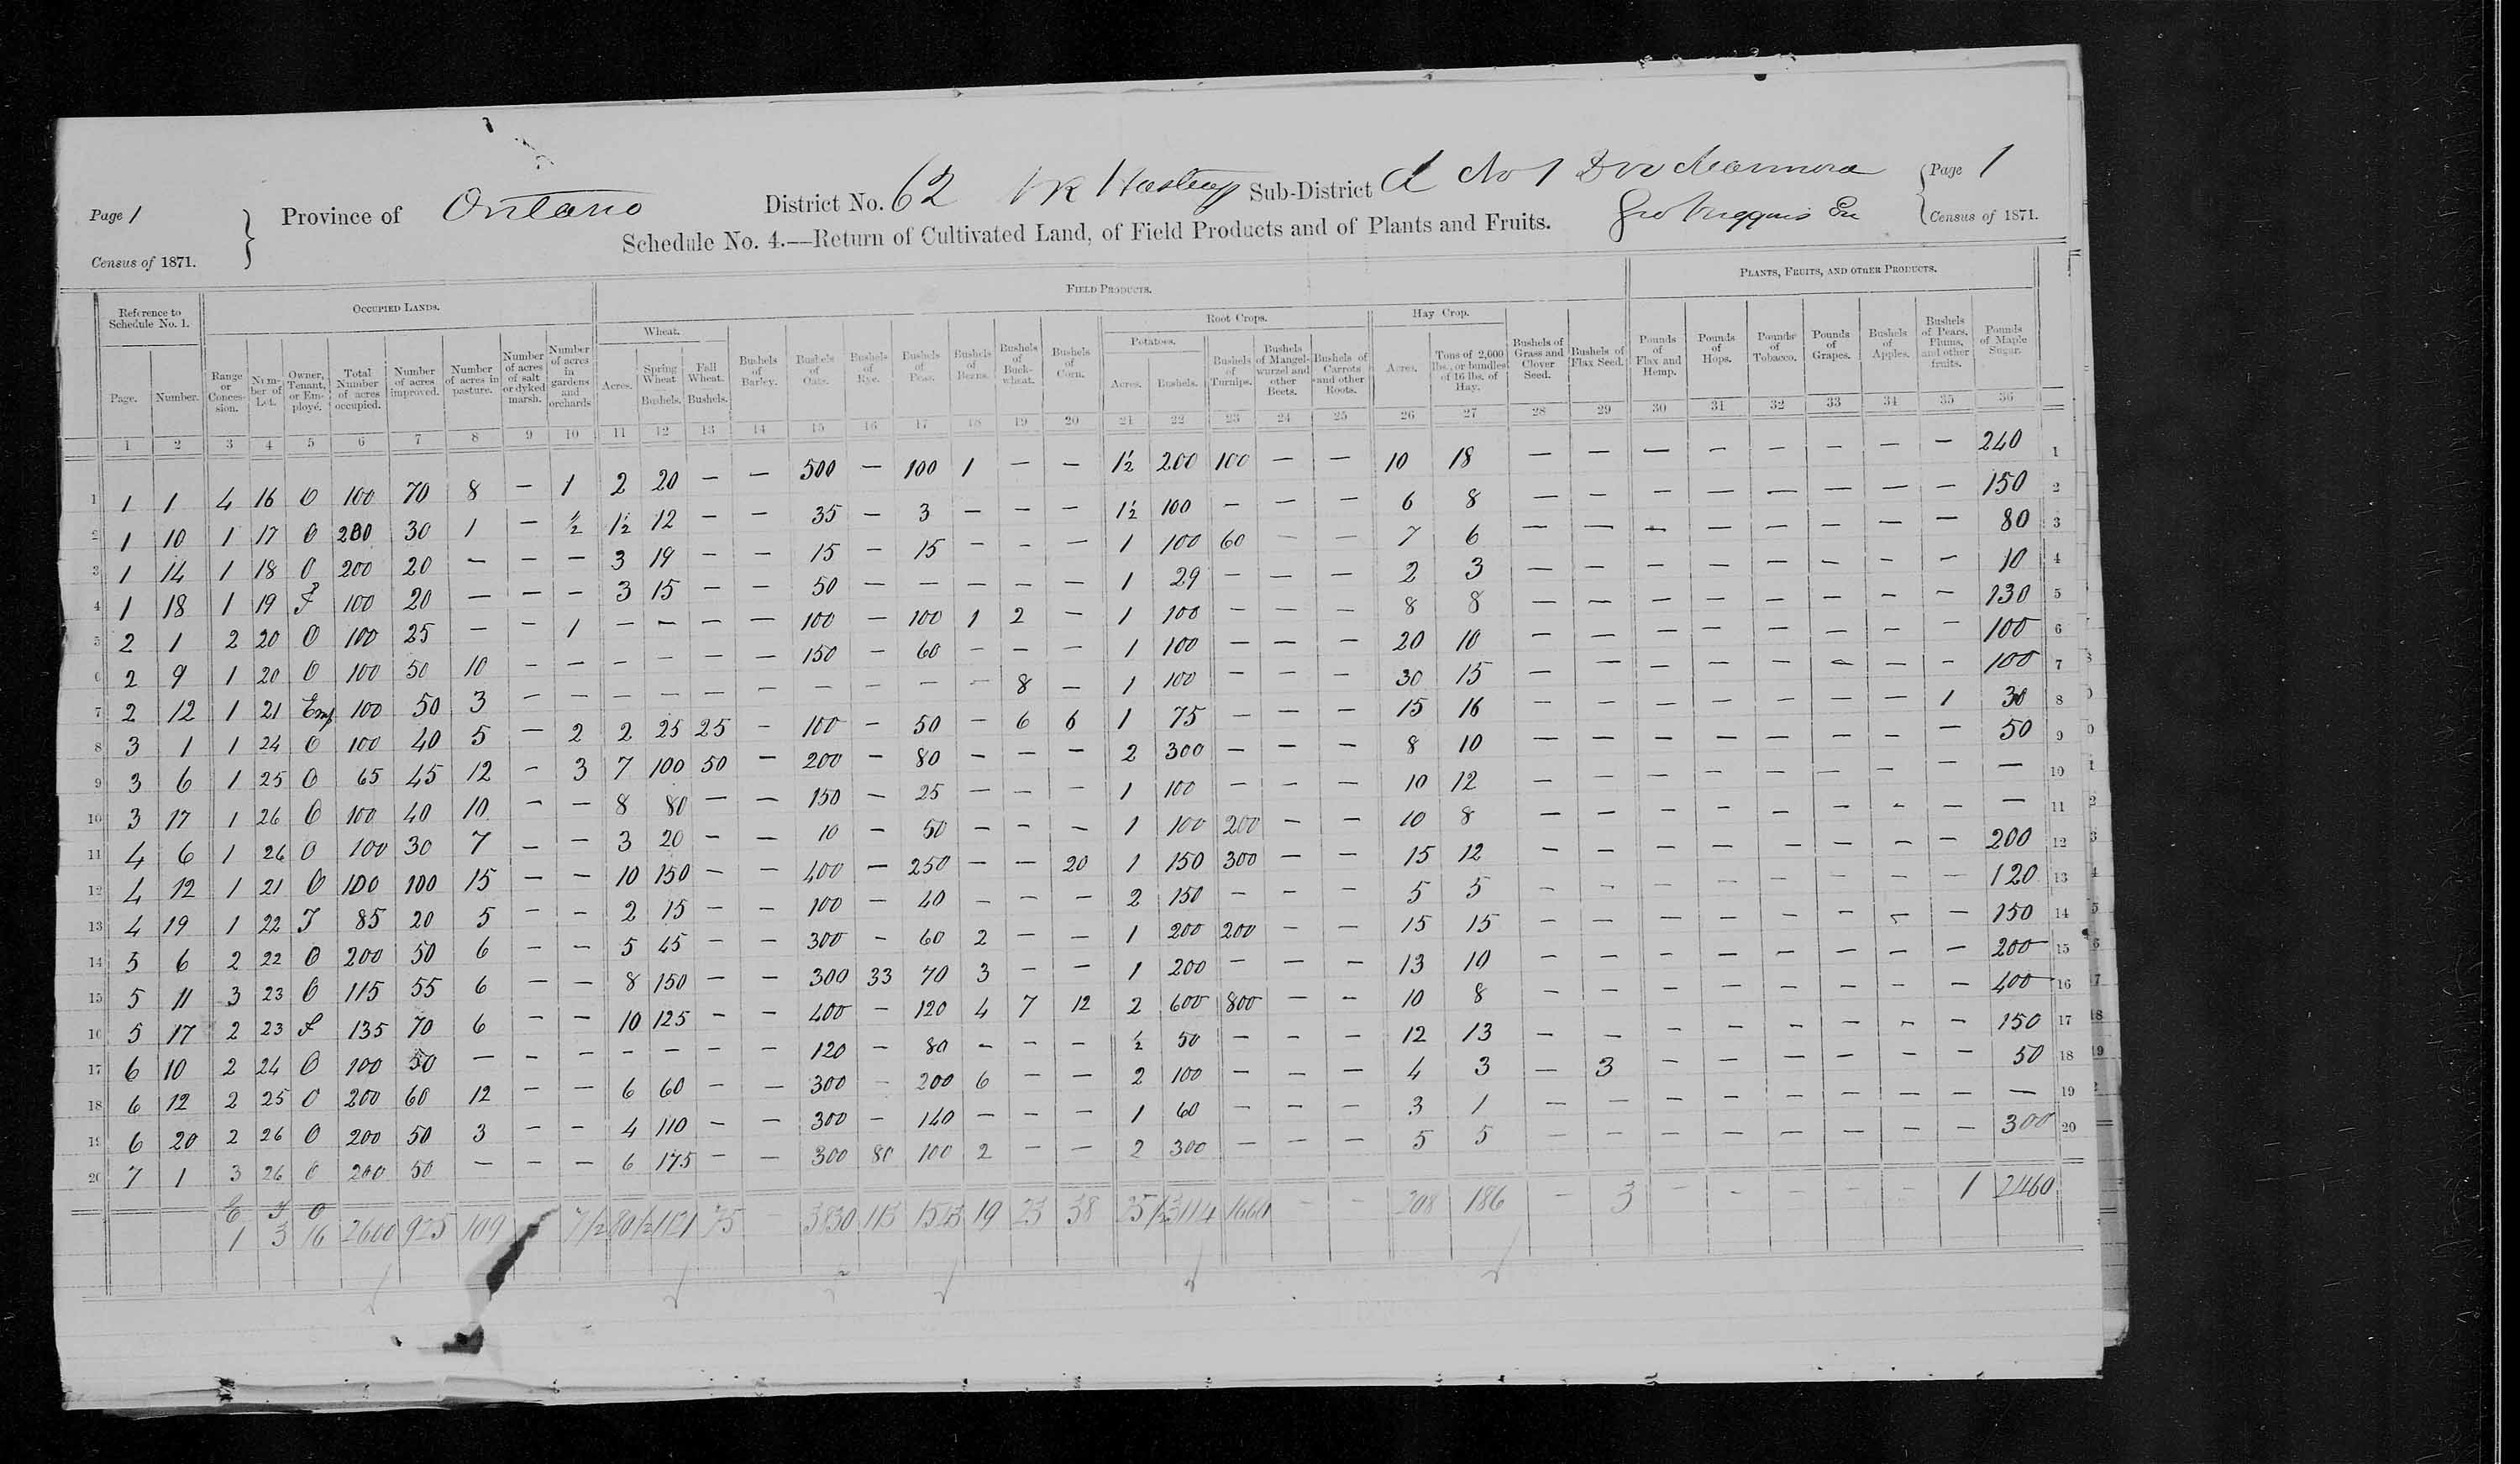 Title: Census of Canada, 1871 - Mikan Number: 142105 - Microform: c-9994